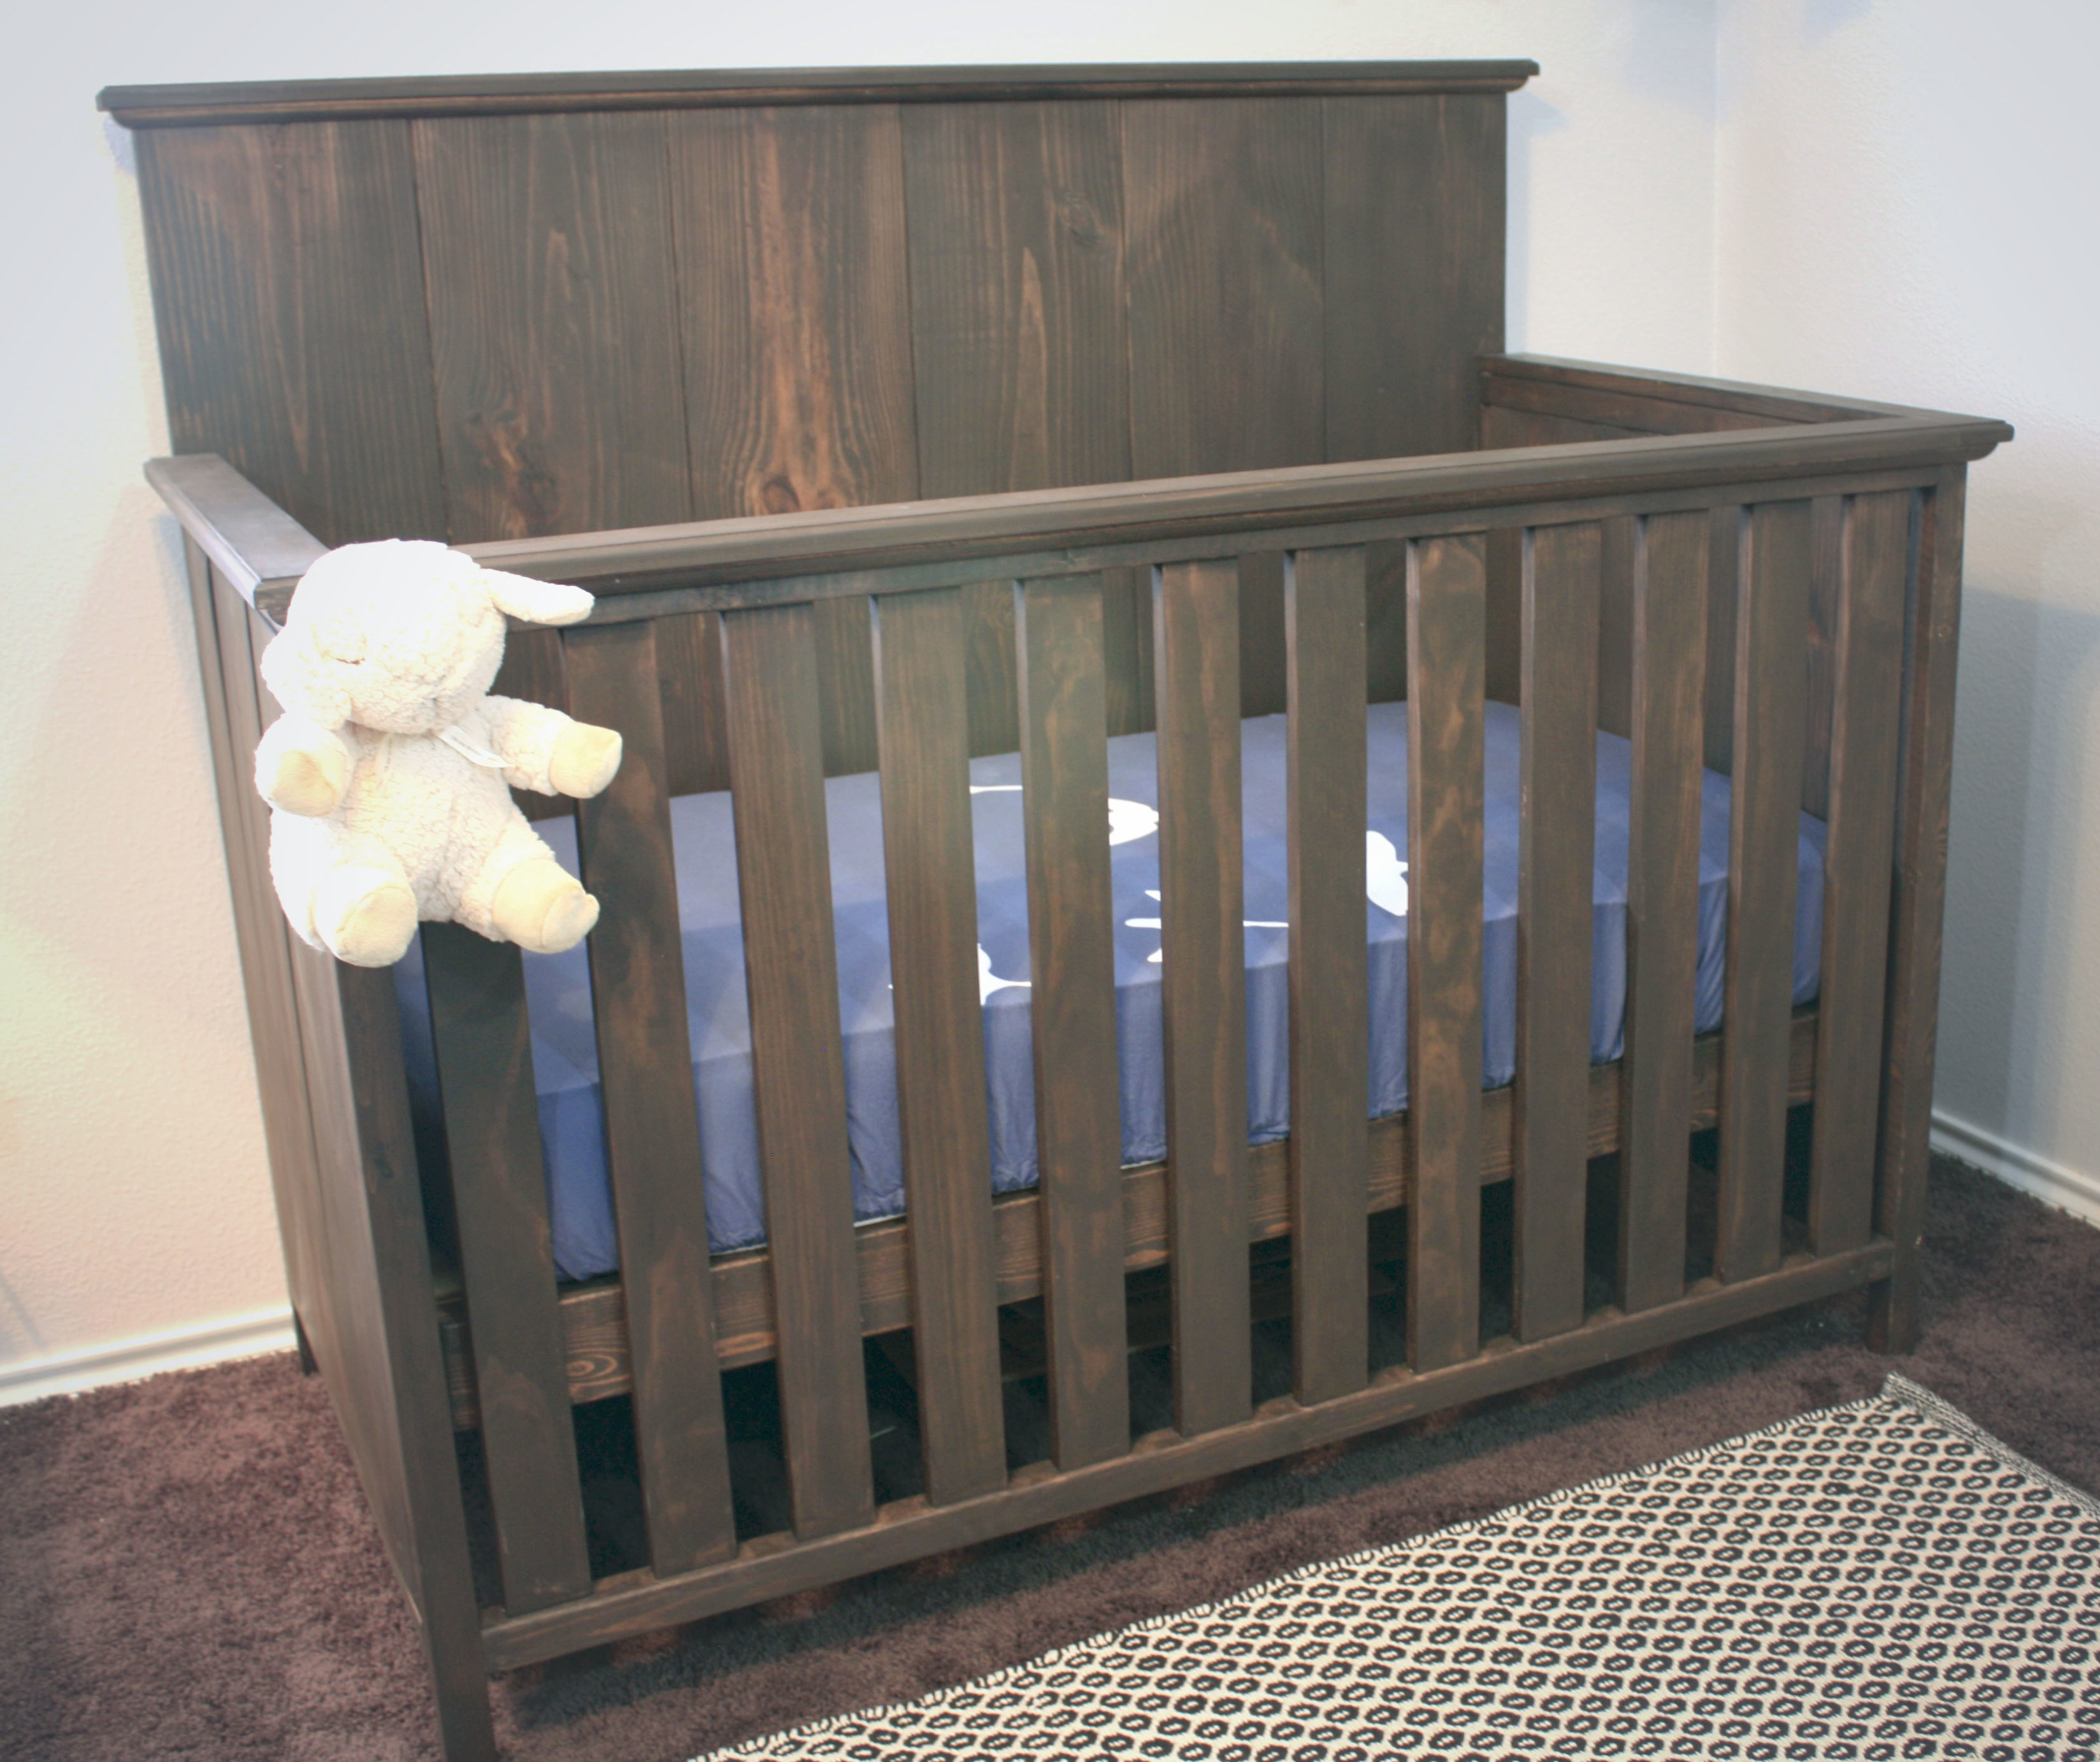 Best ideas about DIY Baby Cradle Plans . Save or Pin How To Build a Crib for $200 Now.